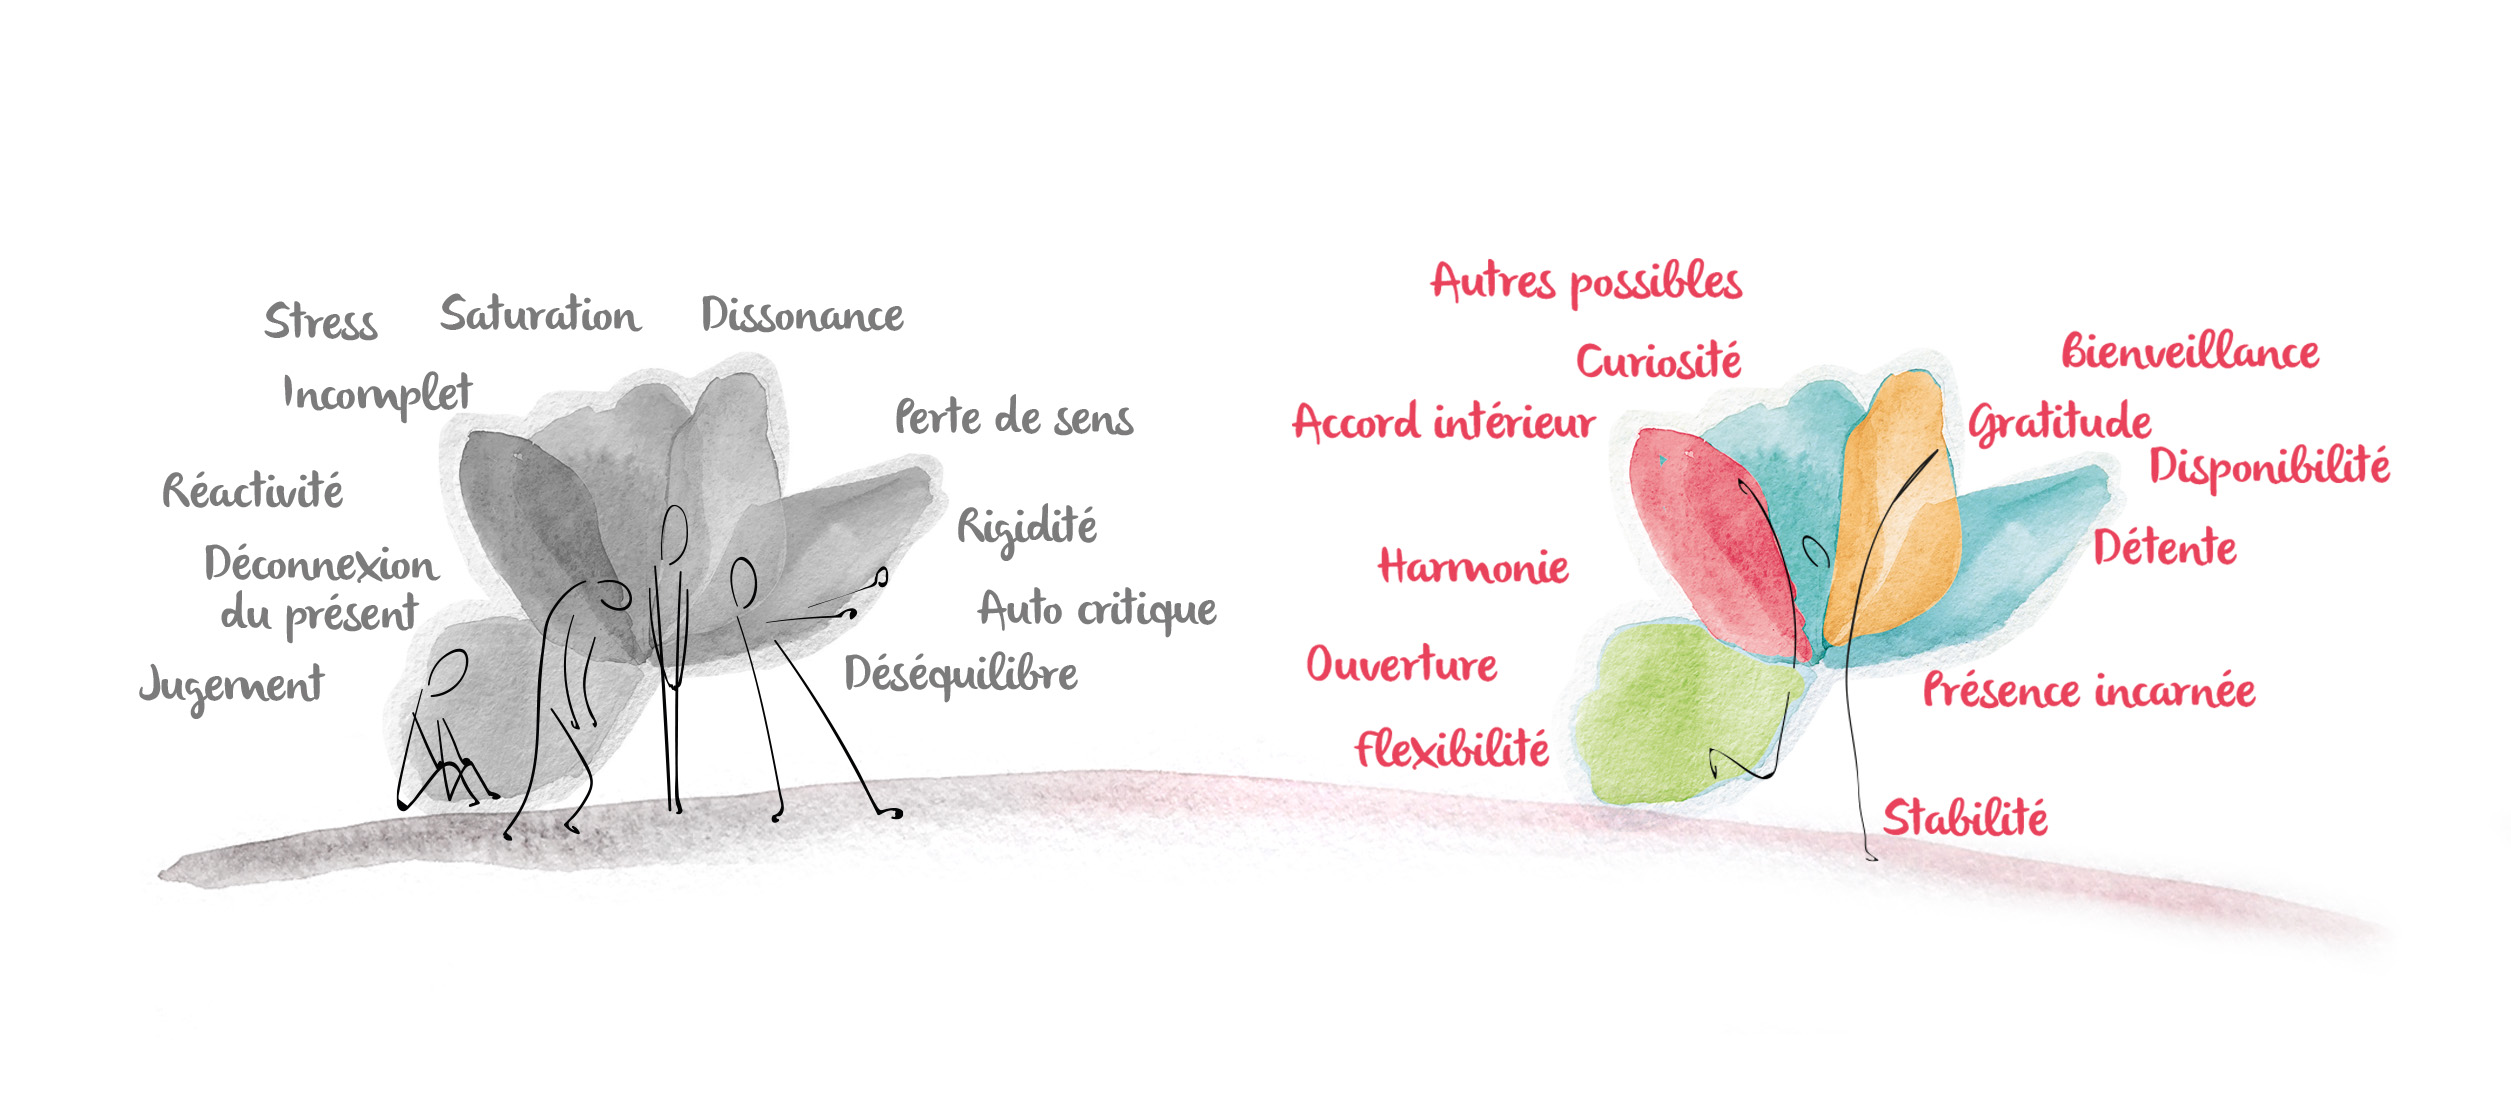 illustration-motivations-evolutions-pleine-conscience